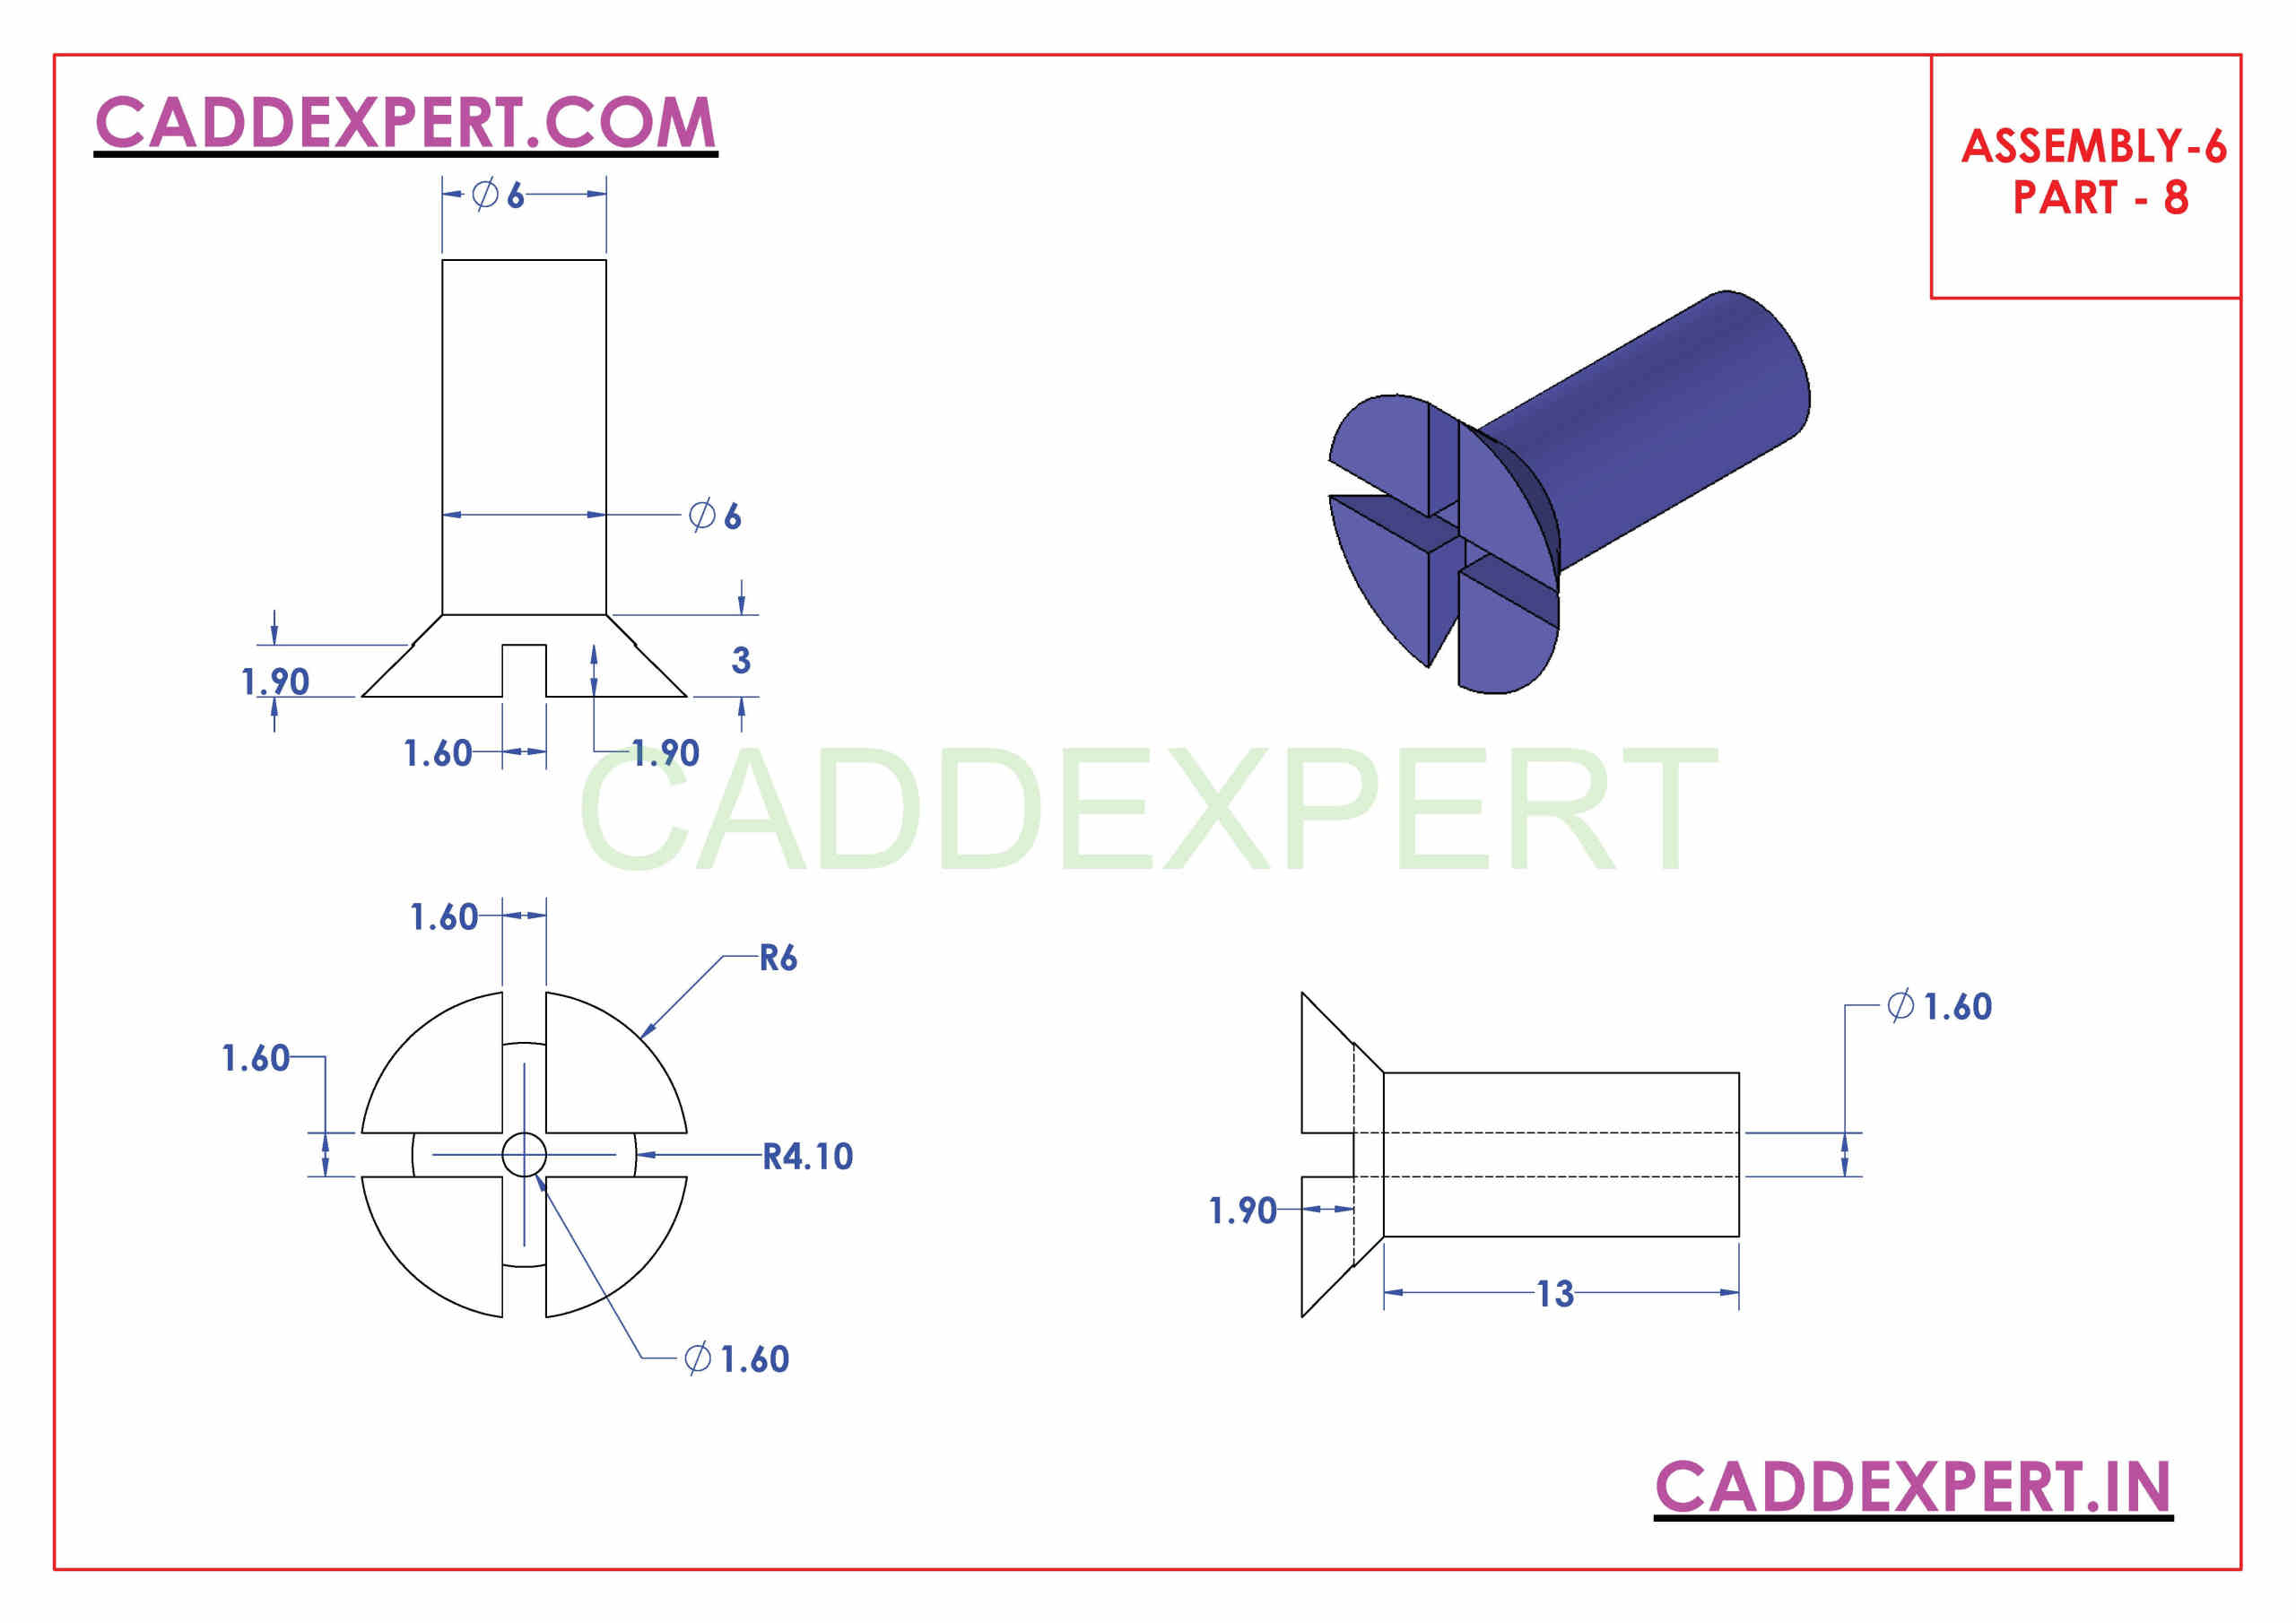 SOLIDWORKS ASSEMBLY PART - 8